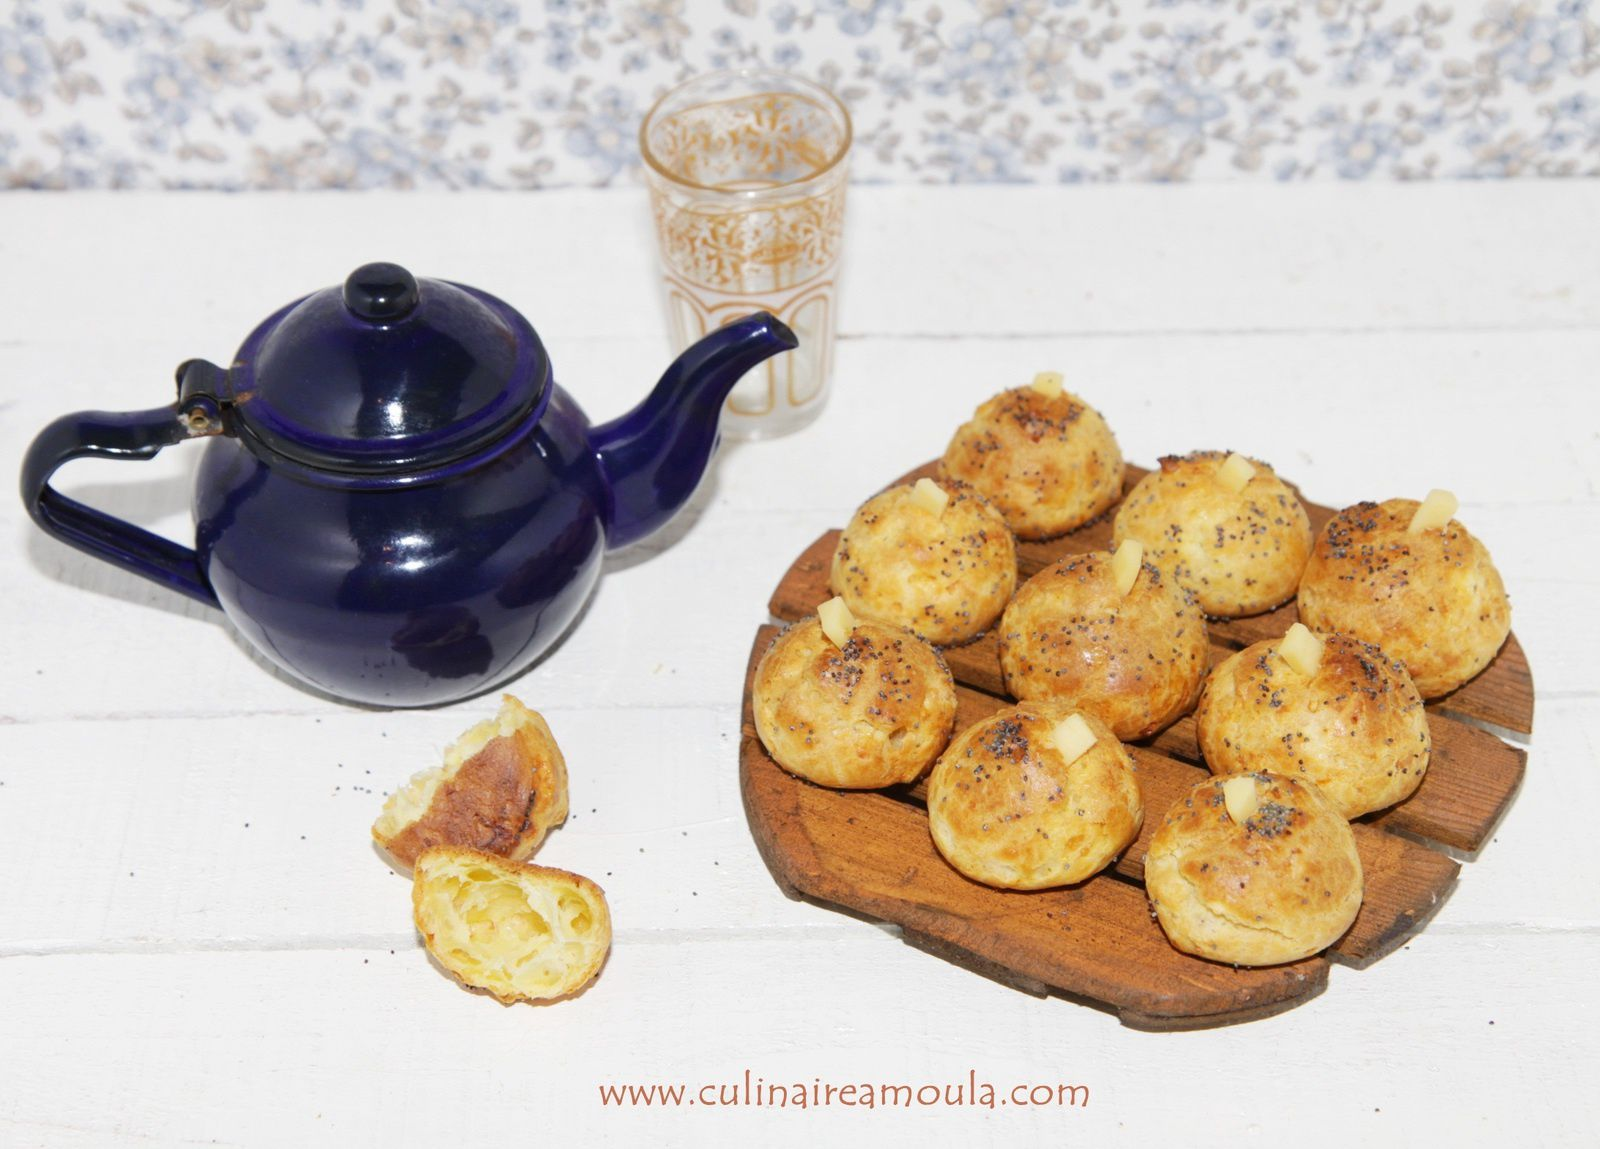 Chouquettes au fromage